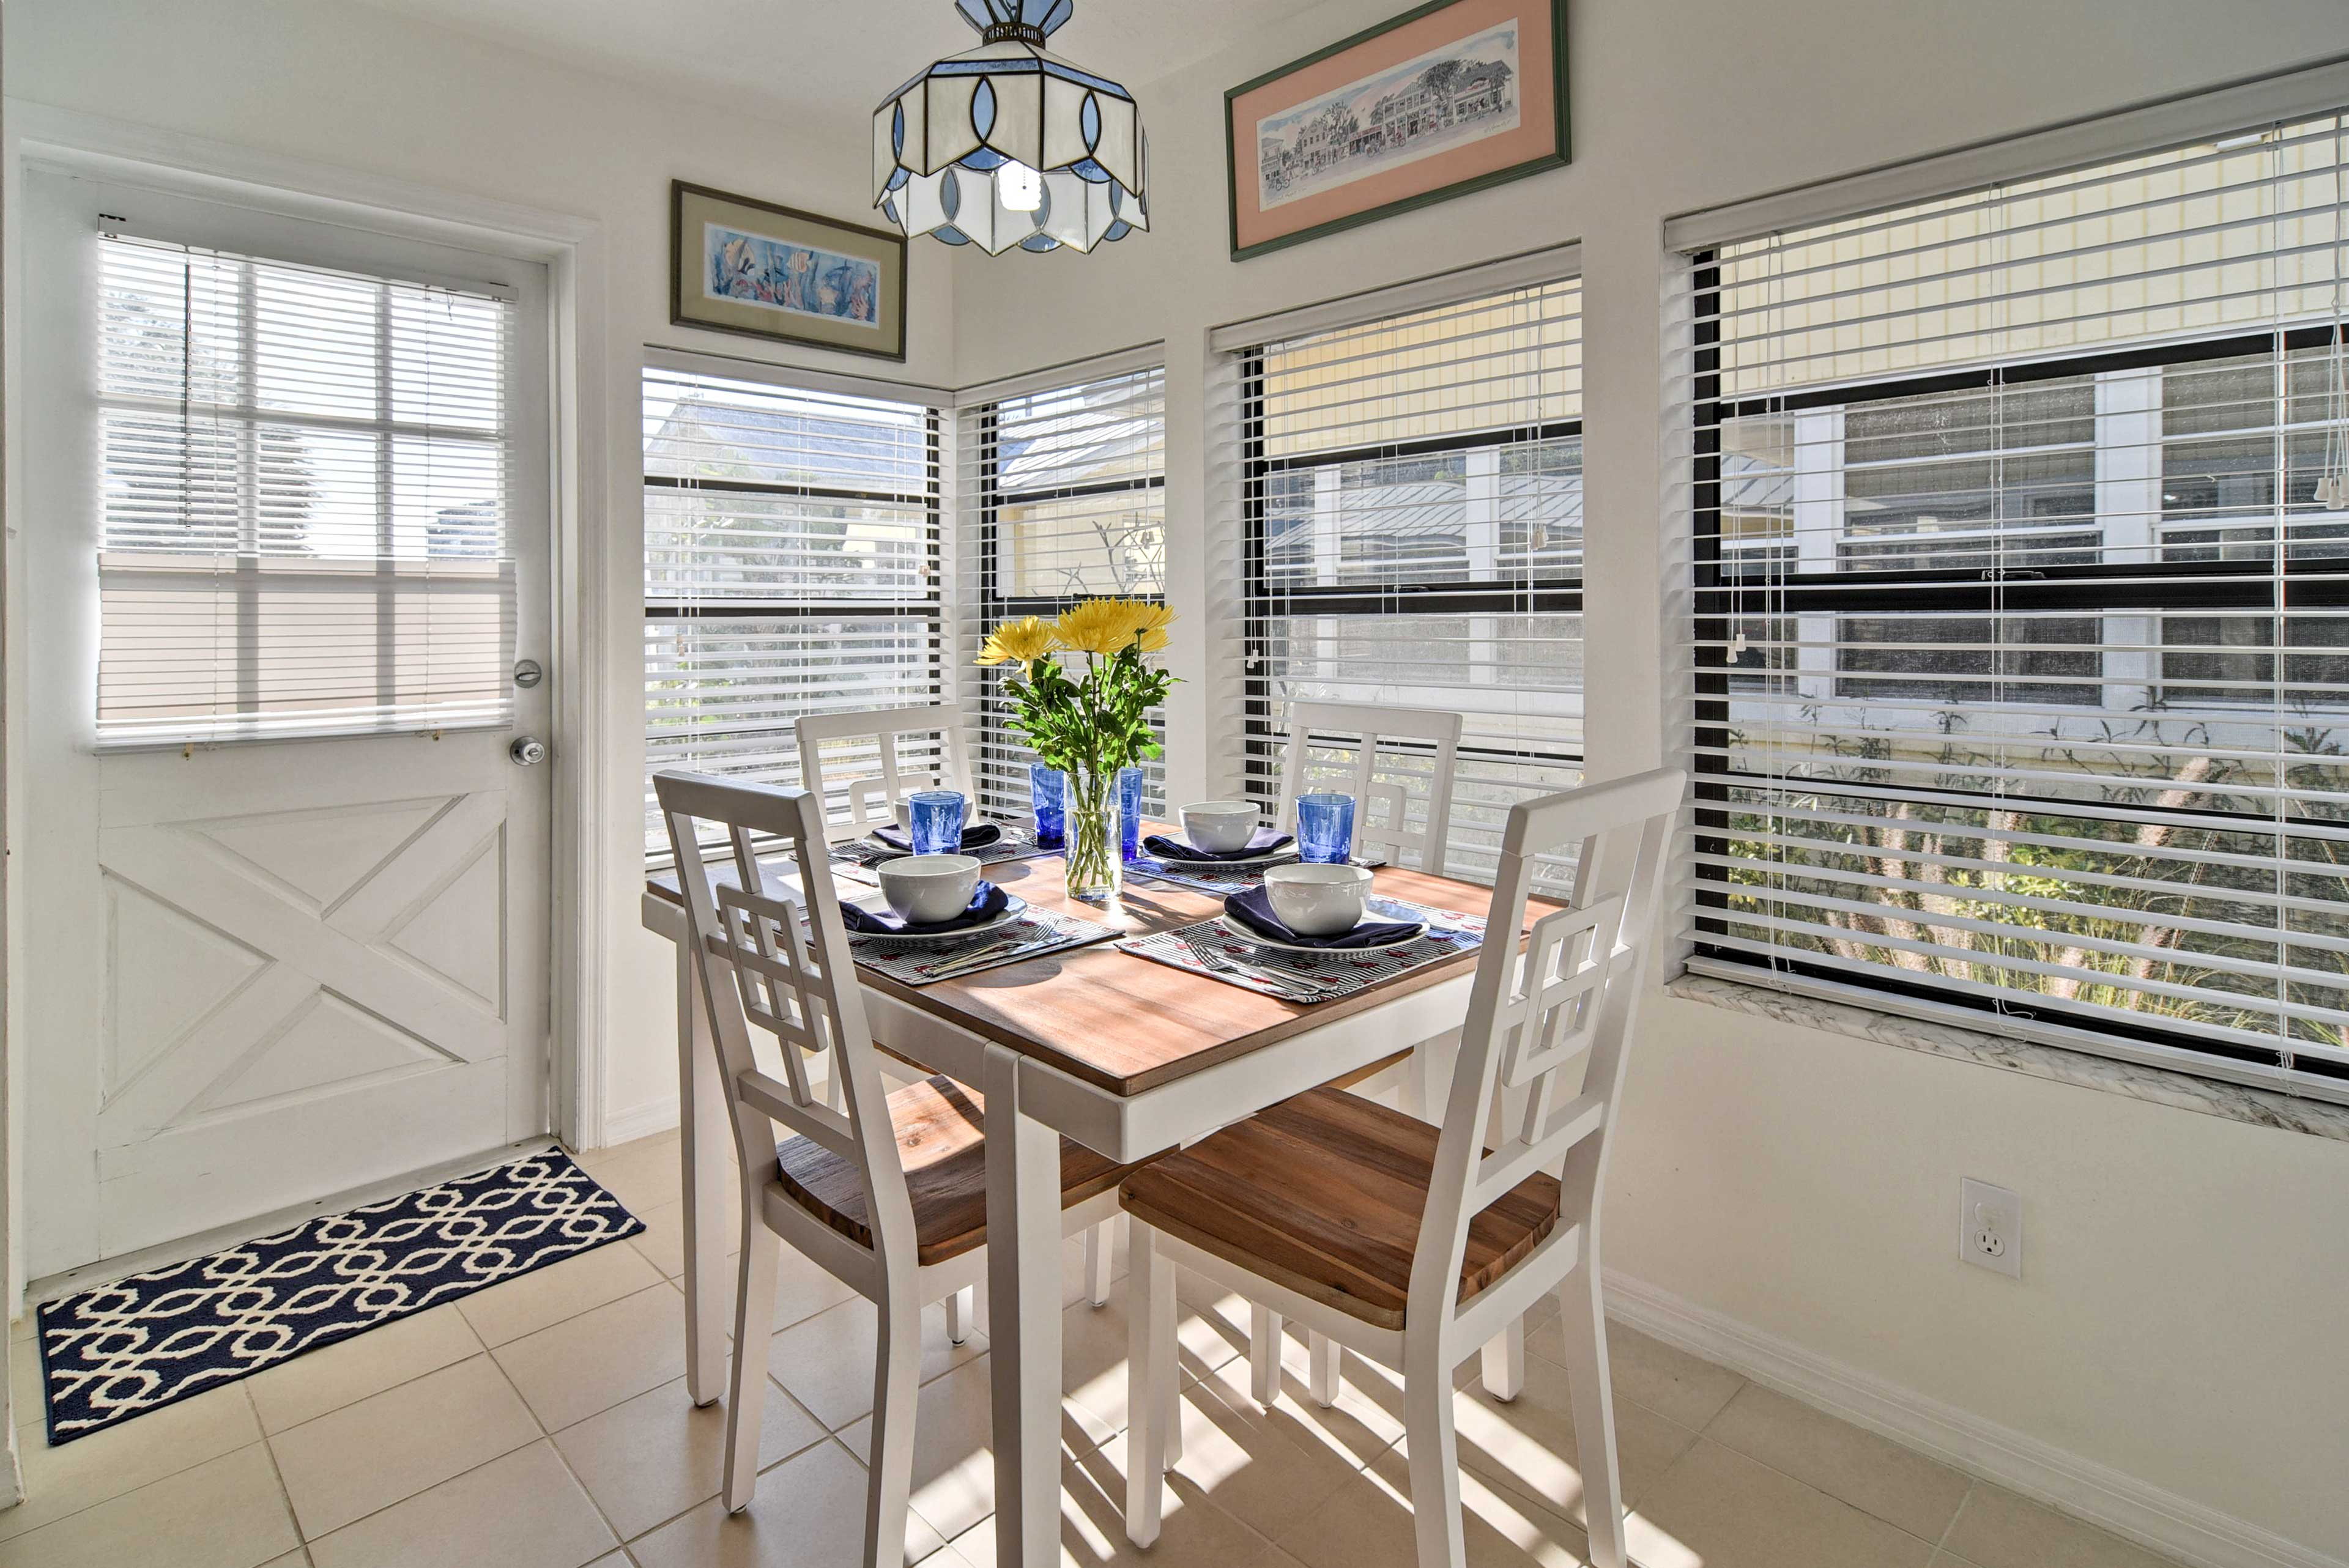 Share home-cooked meals under natural light.